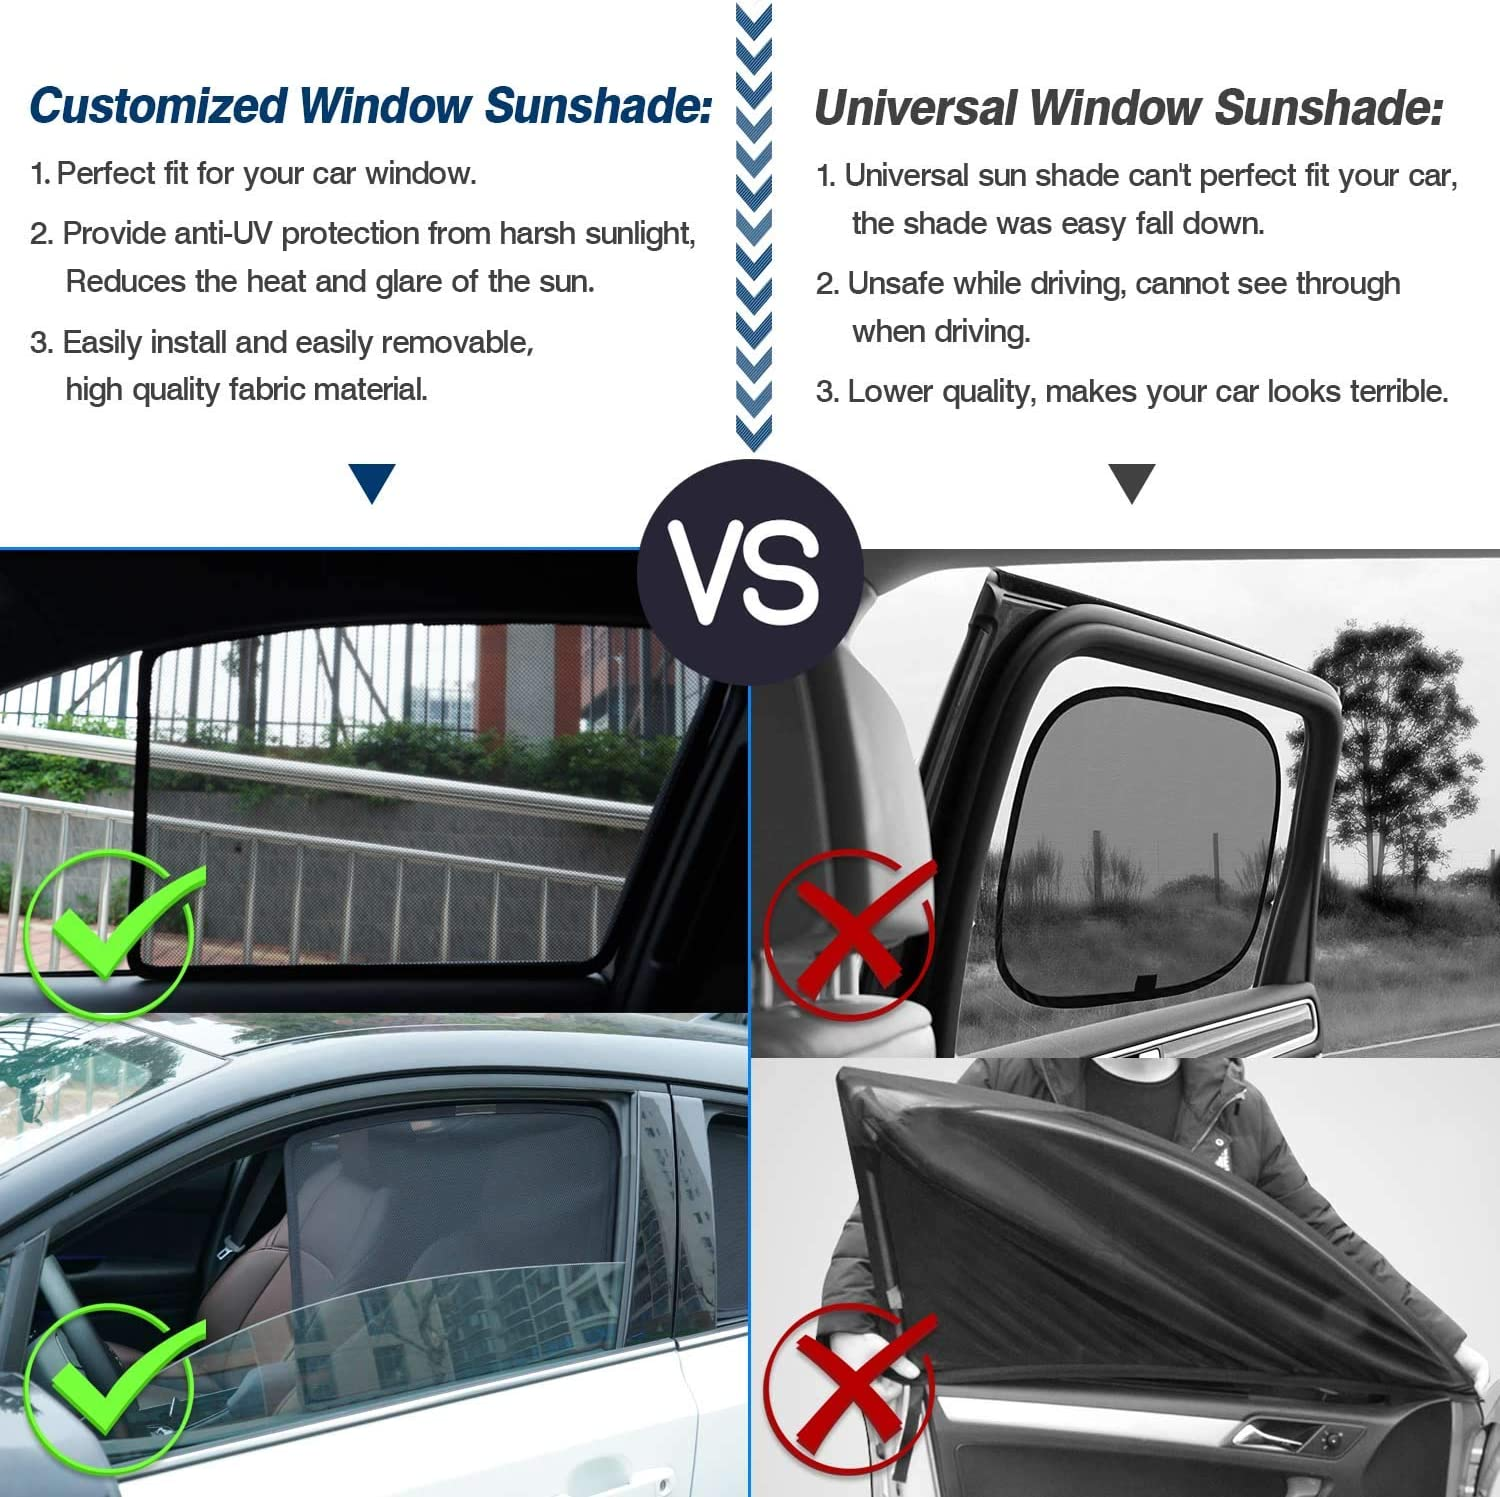 Mixsuper Car Window Shade Sun Protection Glare and UV Visor for Mercedes-Benz GLC-Class X205 GLC300 GLC350e GLC43 GLC63 SUV 2016-2020 Folding Side Window Sunshade Keeps Your Vehicle Cool 4 PCS